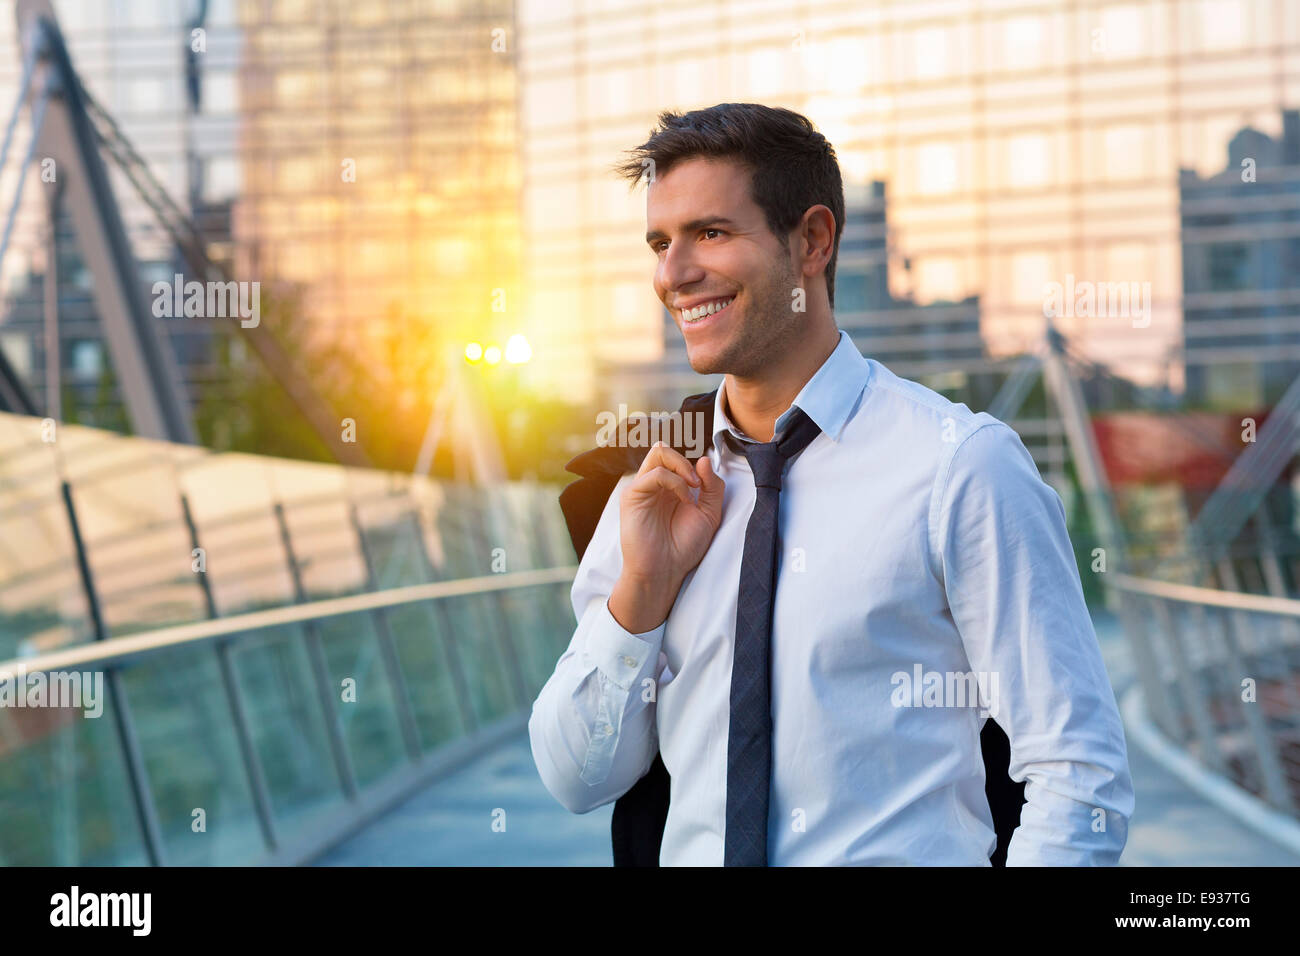 Portrait of Businessman in Financial district - Stock Image